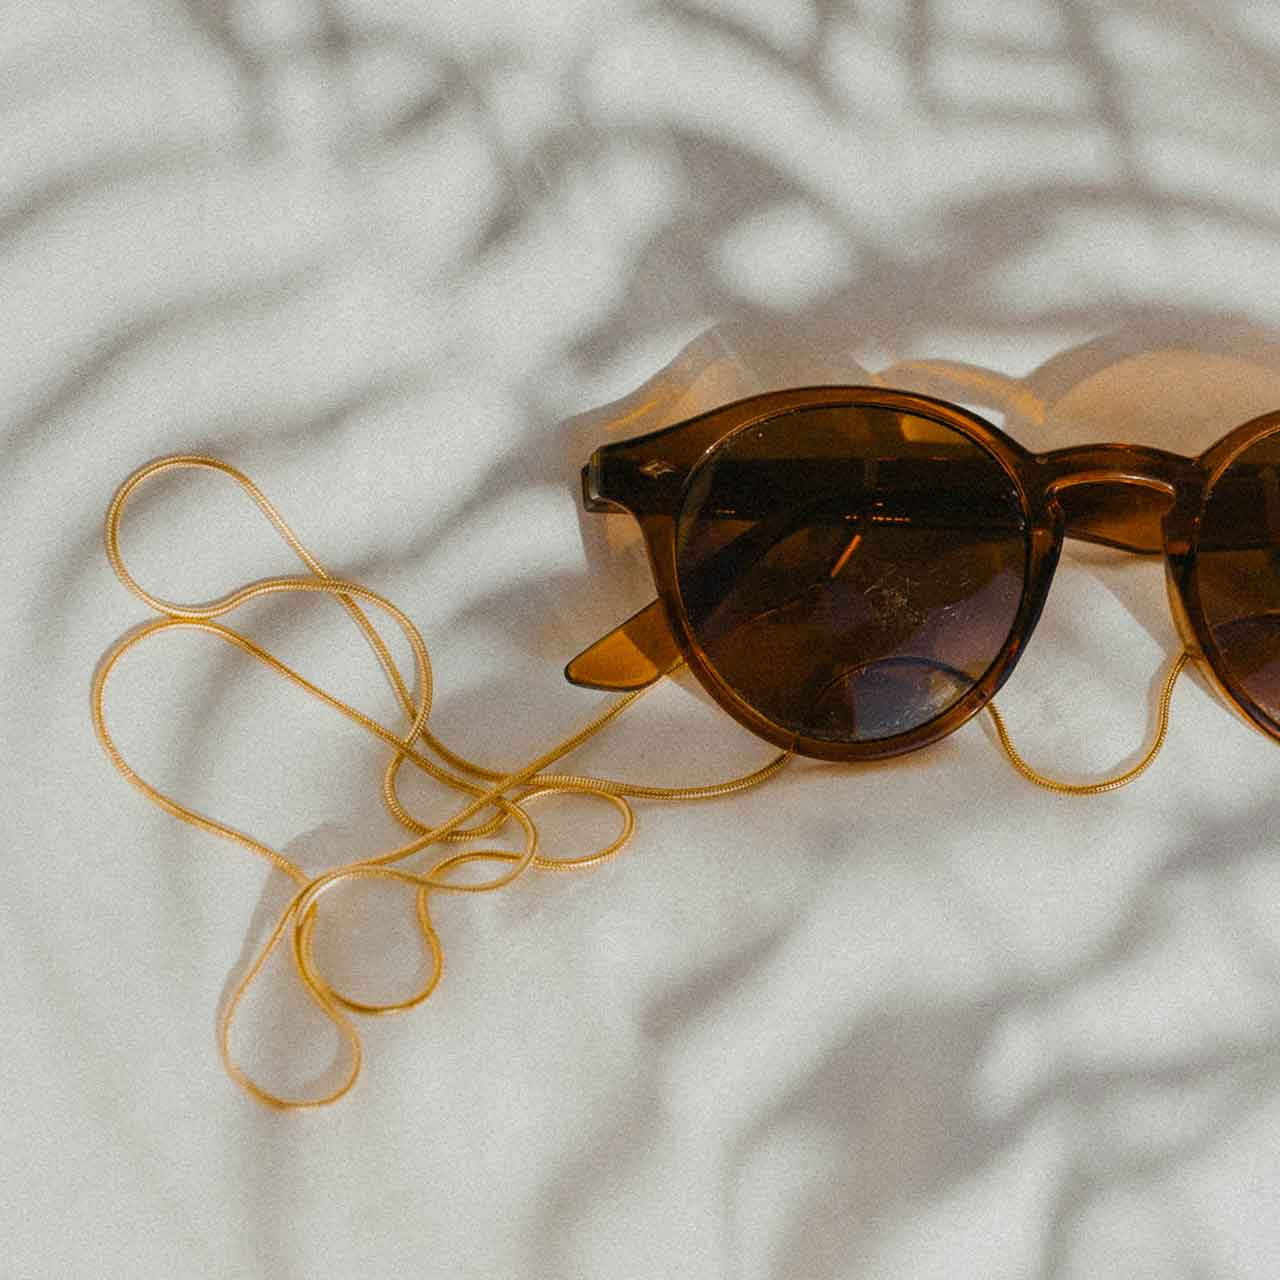 KNOK Baem Glasses Chain in gold shown on sunglasses with shadows of palm trees